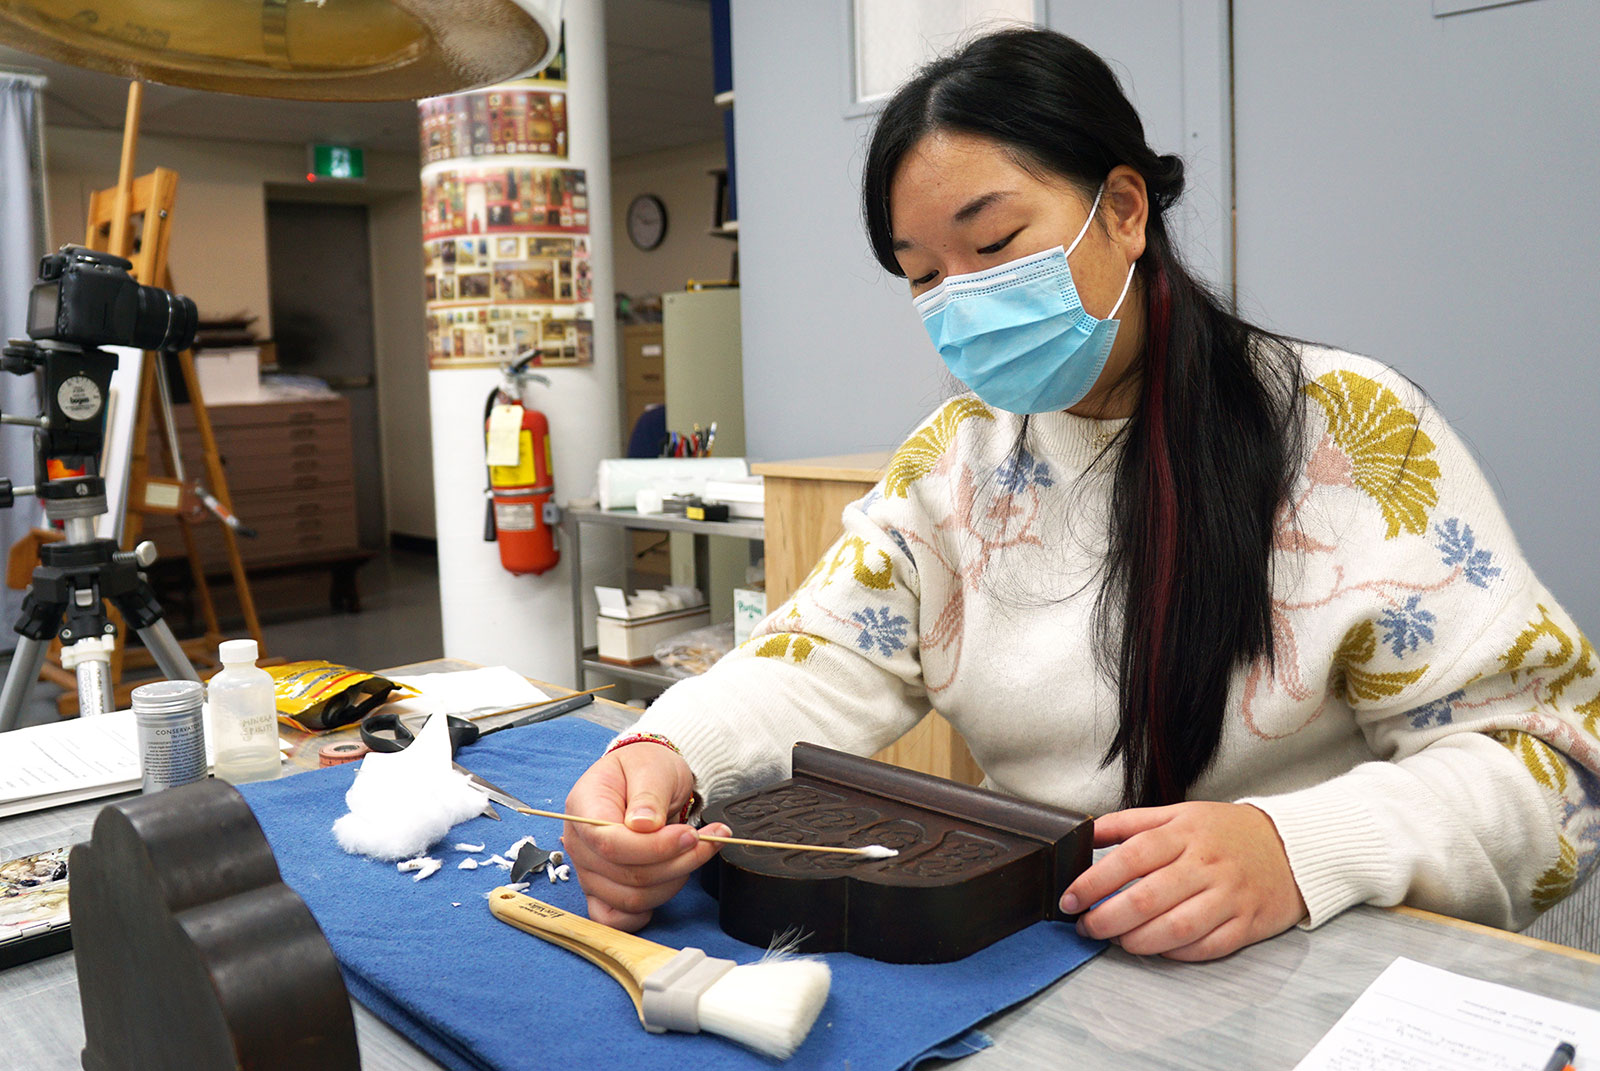 In an art conservation lab, a university student sits at a table cleaning a decorative wooden bookend. The student wears a blue face mask over their mouth and nose, and uses a cotton swab on a wooden dowel to delicately clean the surface of the wood.